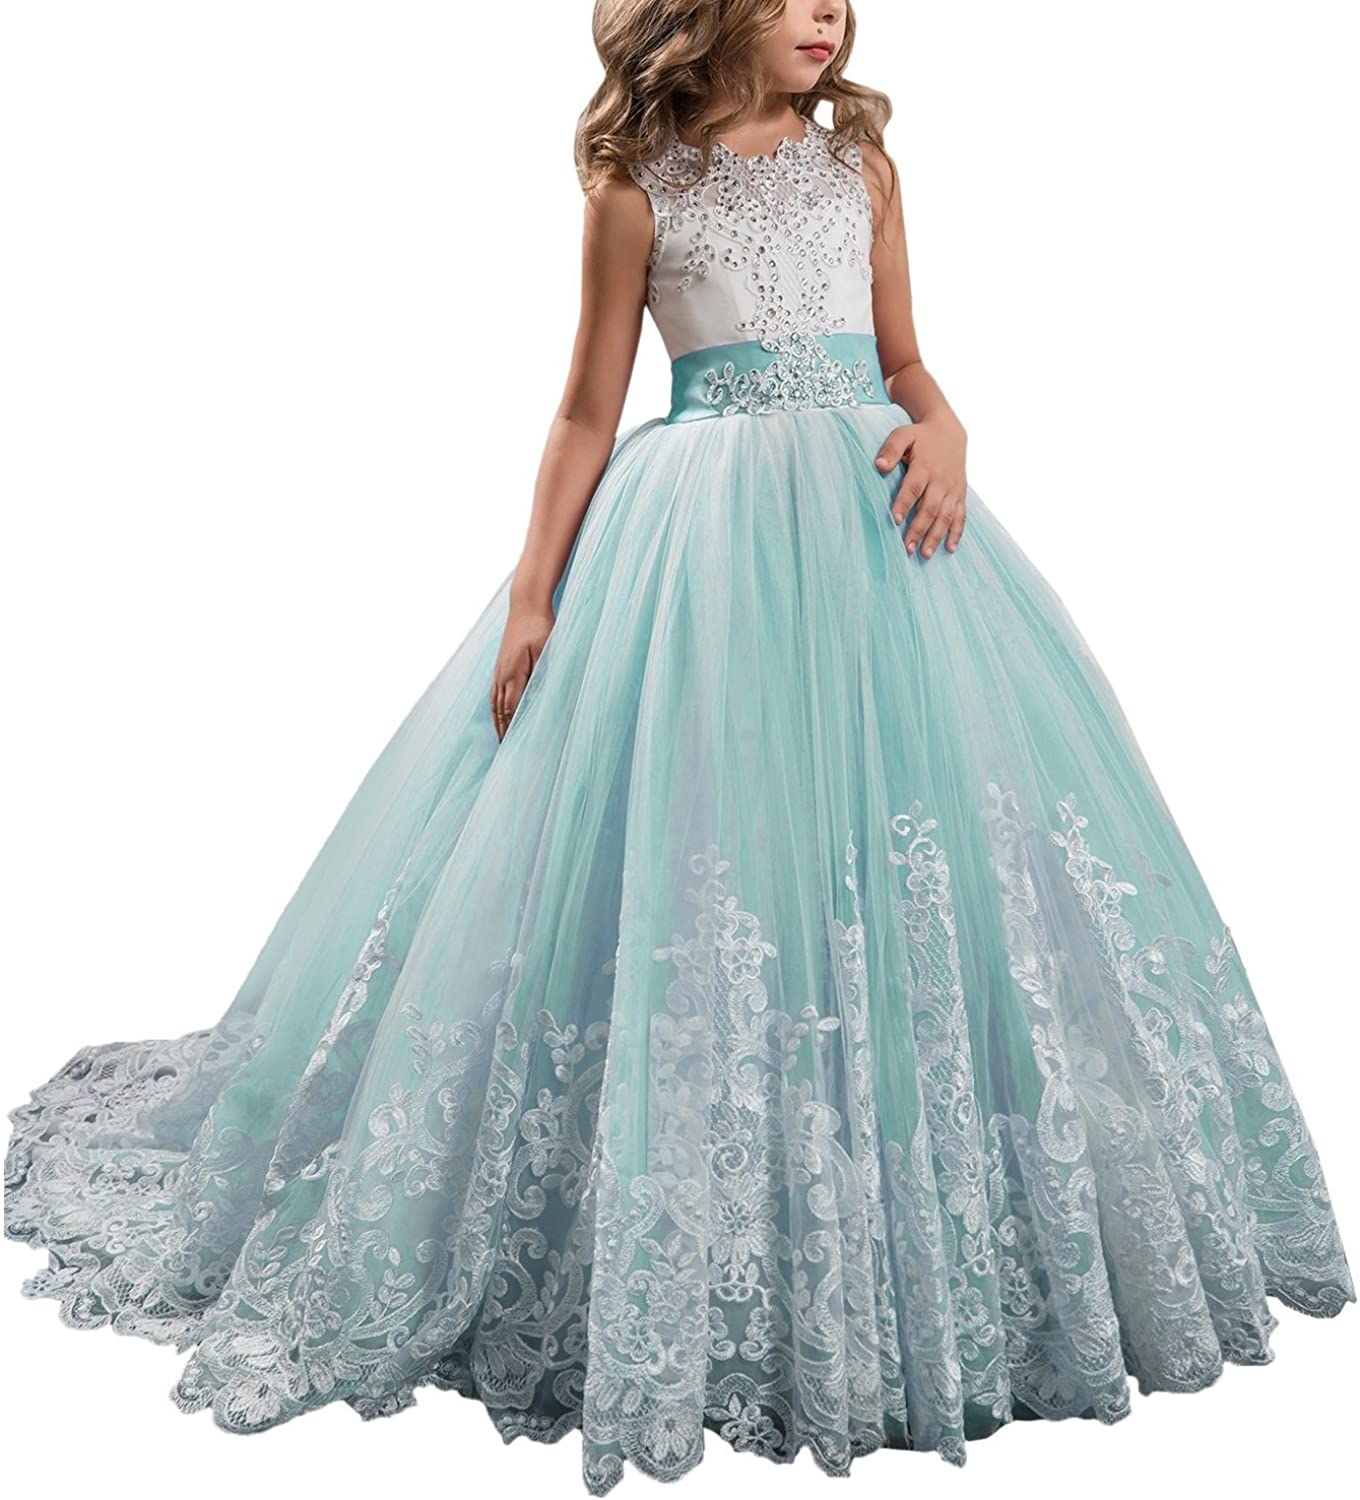 Lace Princess Long Girls Pageant Dresses Kids Prom Puffy Tulle Ball Gown